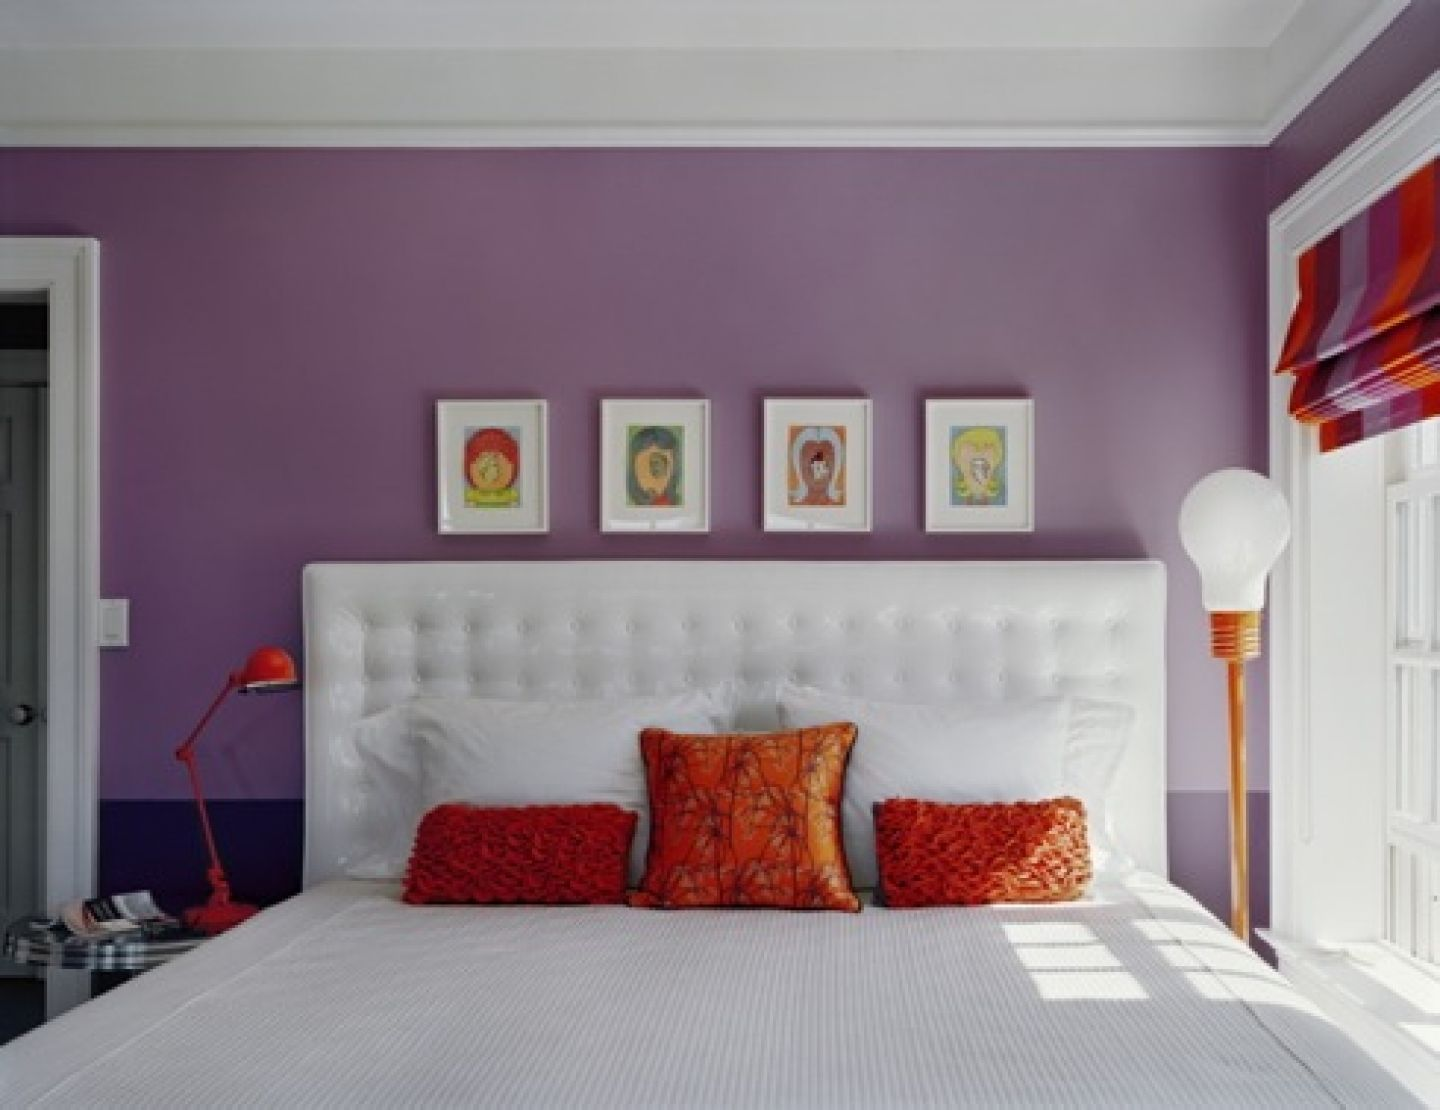 Bedroom designs for teenage girls purple - Chambre Violet Orange For Teenage Girls Simple Purple Bedroom Idp Interior